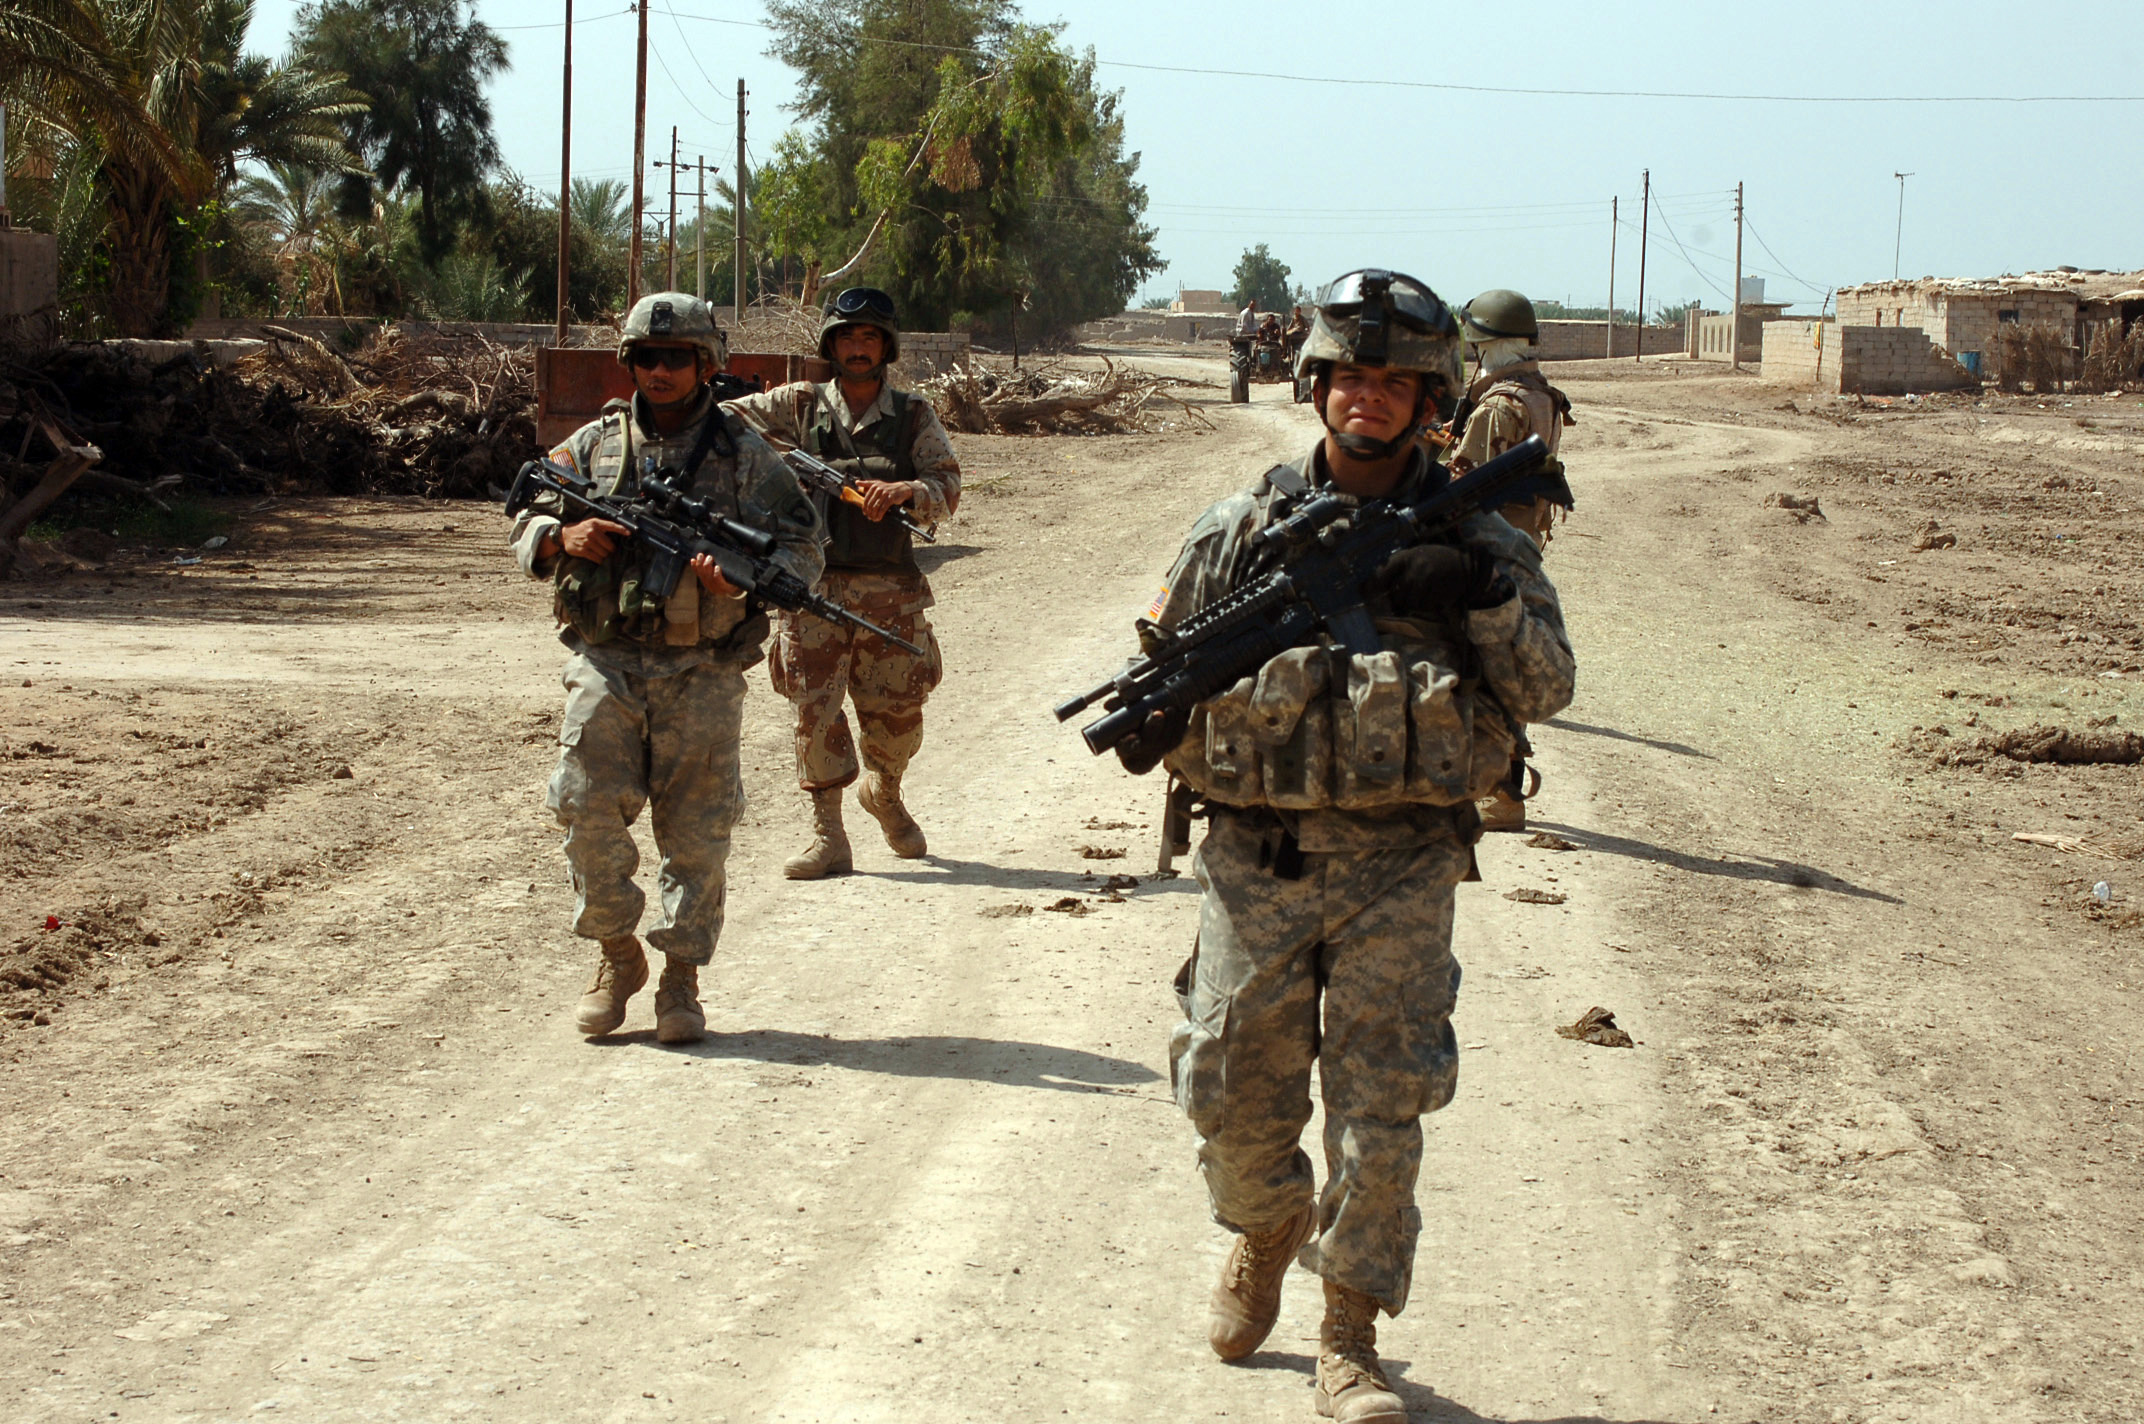 Members of B Company, 1-502nd Infantry Battalion, 101st Airborne Division conduct a patrol during Operation Desert Scorpion. The operation is an effort to disrupt terrorist activities near Rushdie Mula, Iraq. The photo was taken on the afternoon of April 20, 2006 as part of Operation Iraqi Freedom. (U.S. Army photo by Sgt. 1st Class David D. Isakson) (Released)